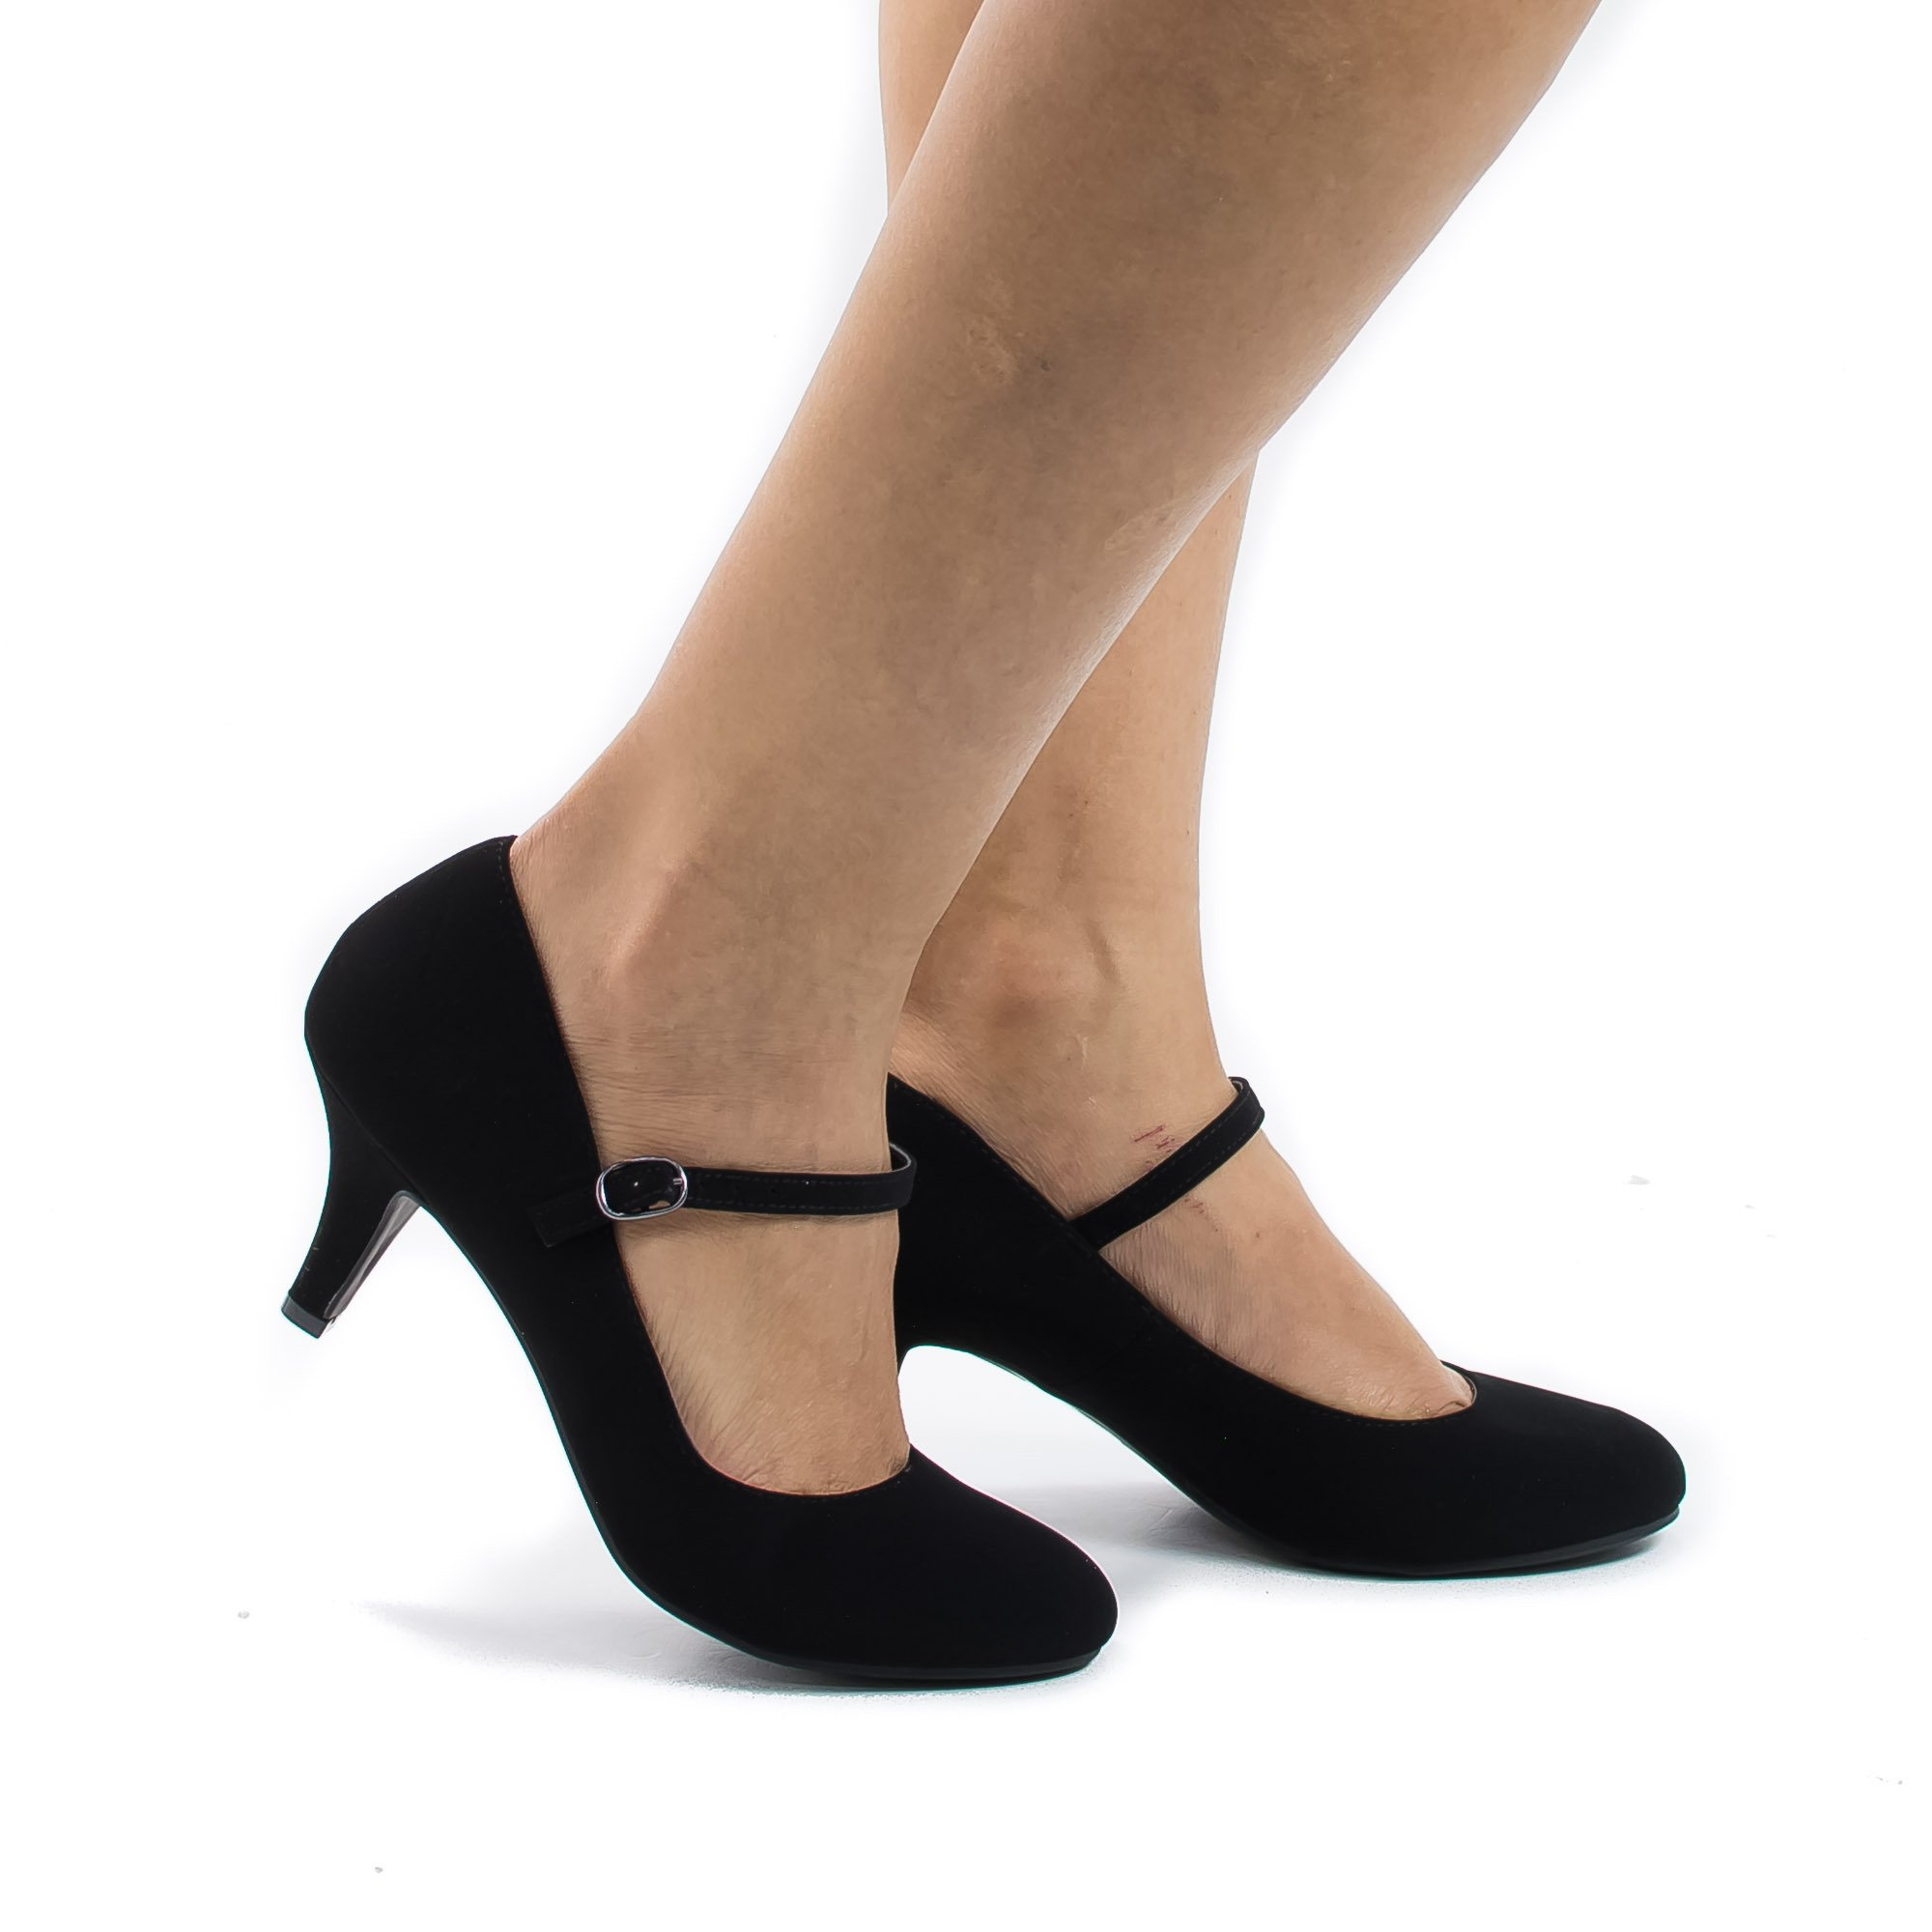 Kirk Black Round Toe Mary Jane Extra Padded Insole Comfort Dress Pumps-6